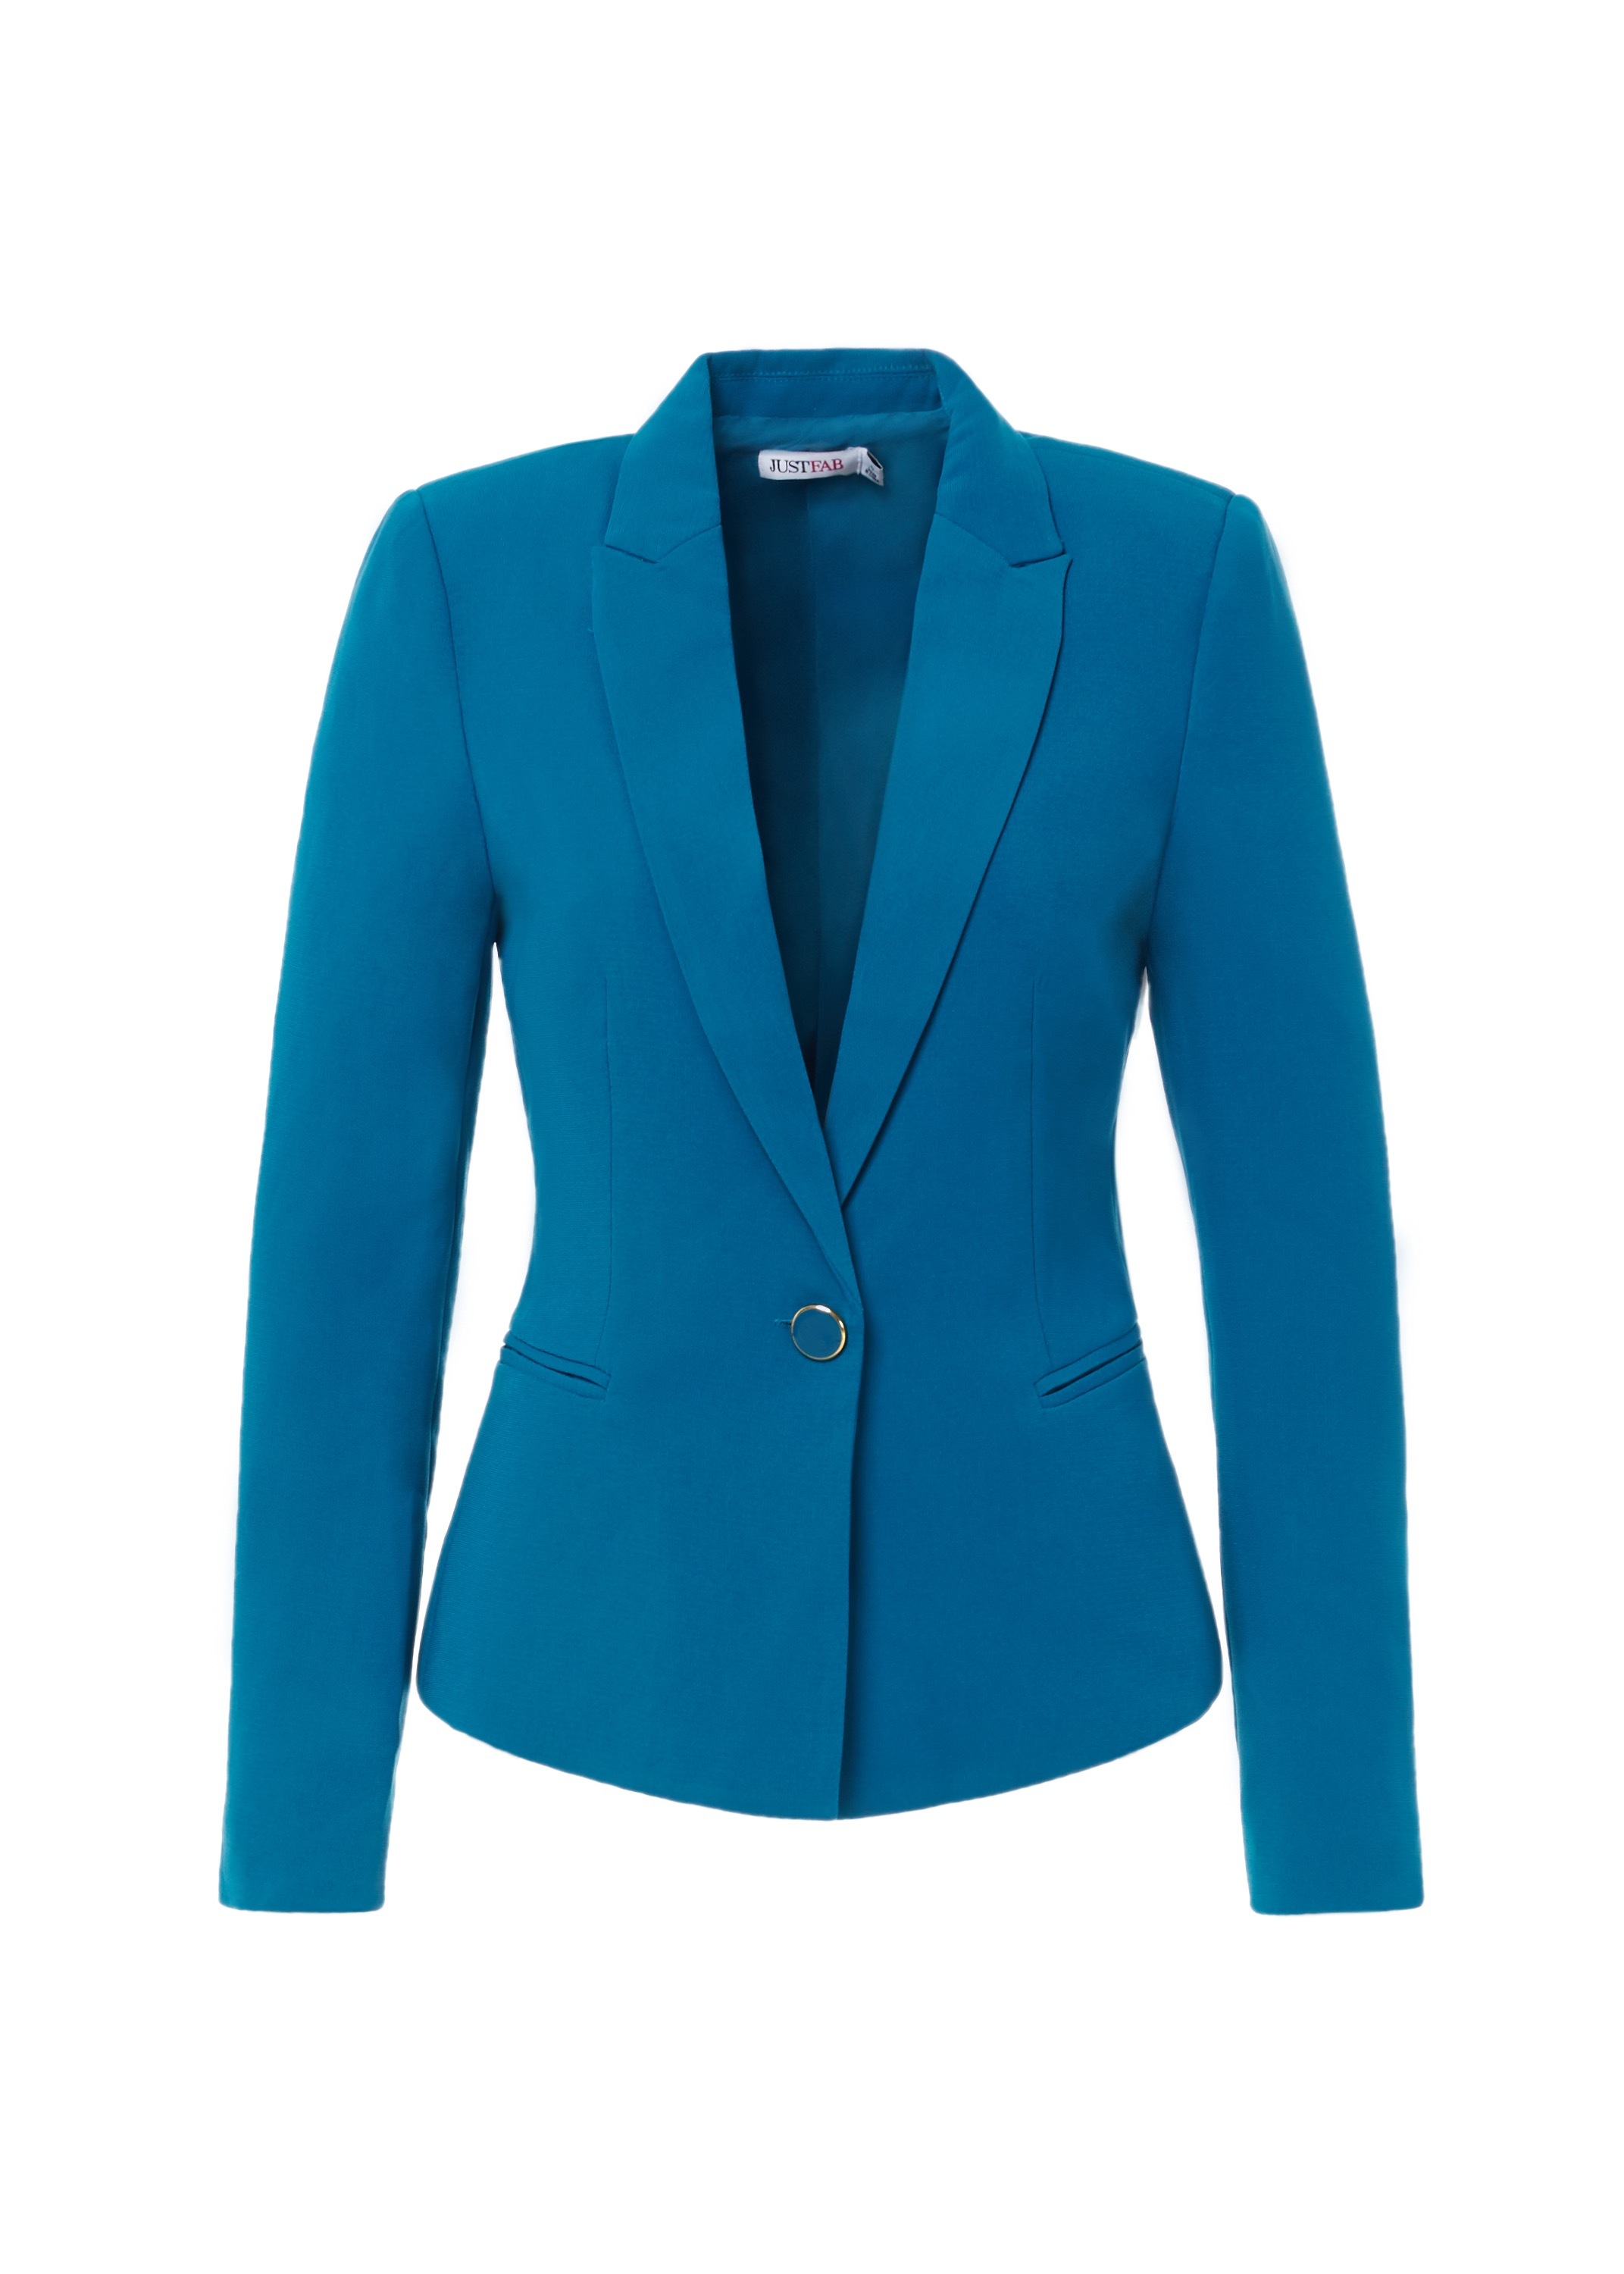 Tailored Classic Blazer in Dark Teal